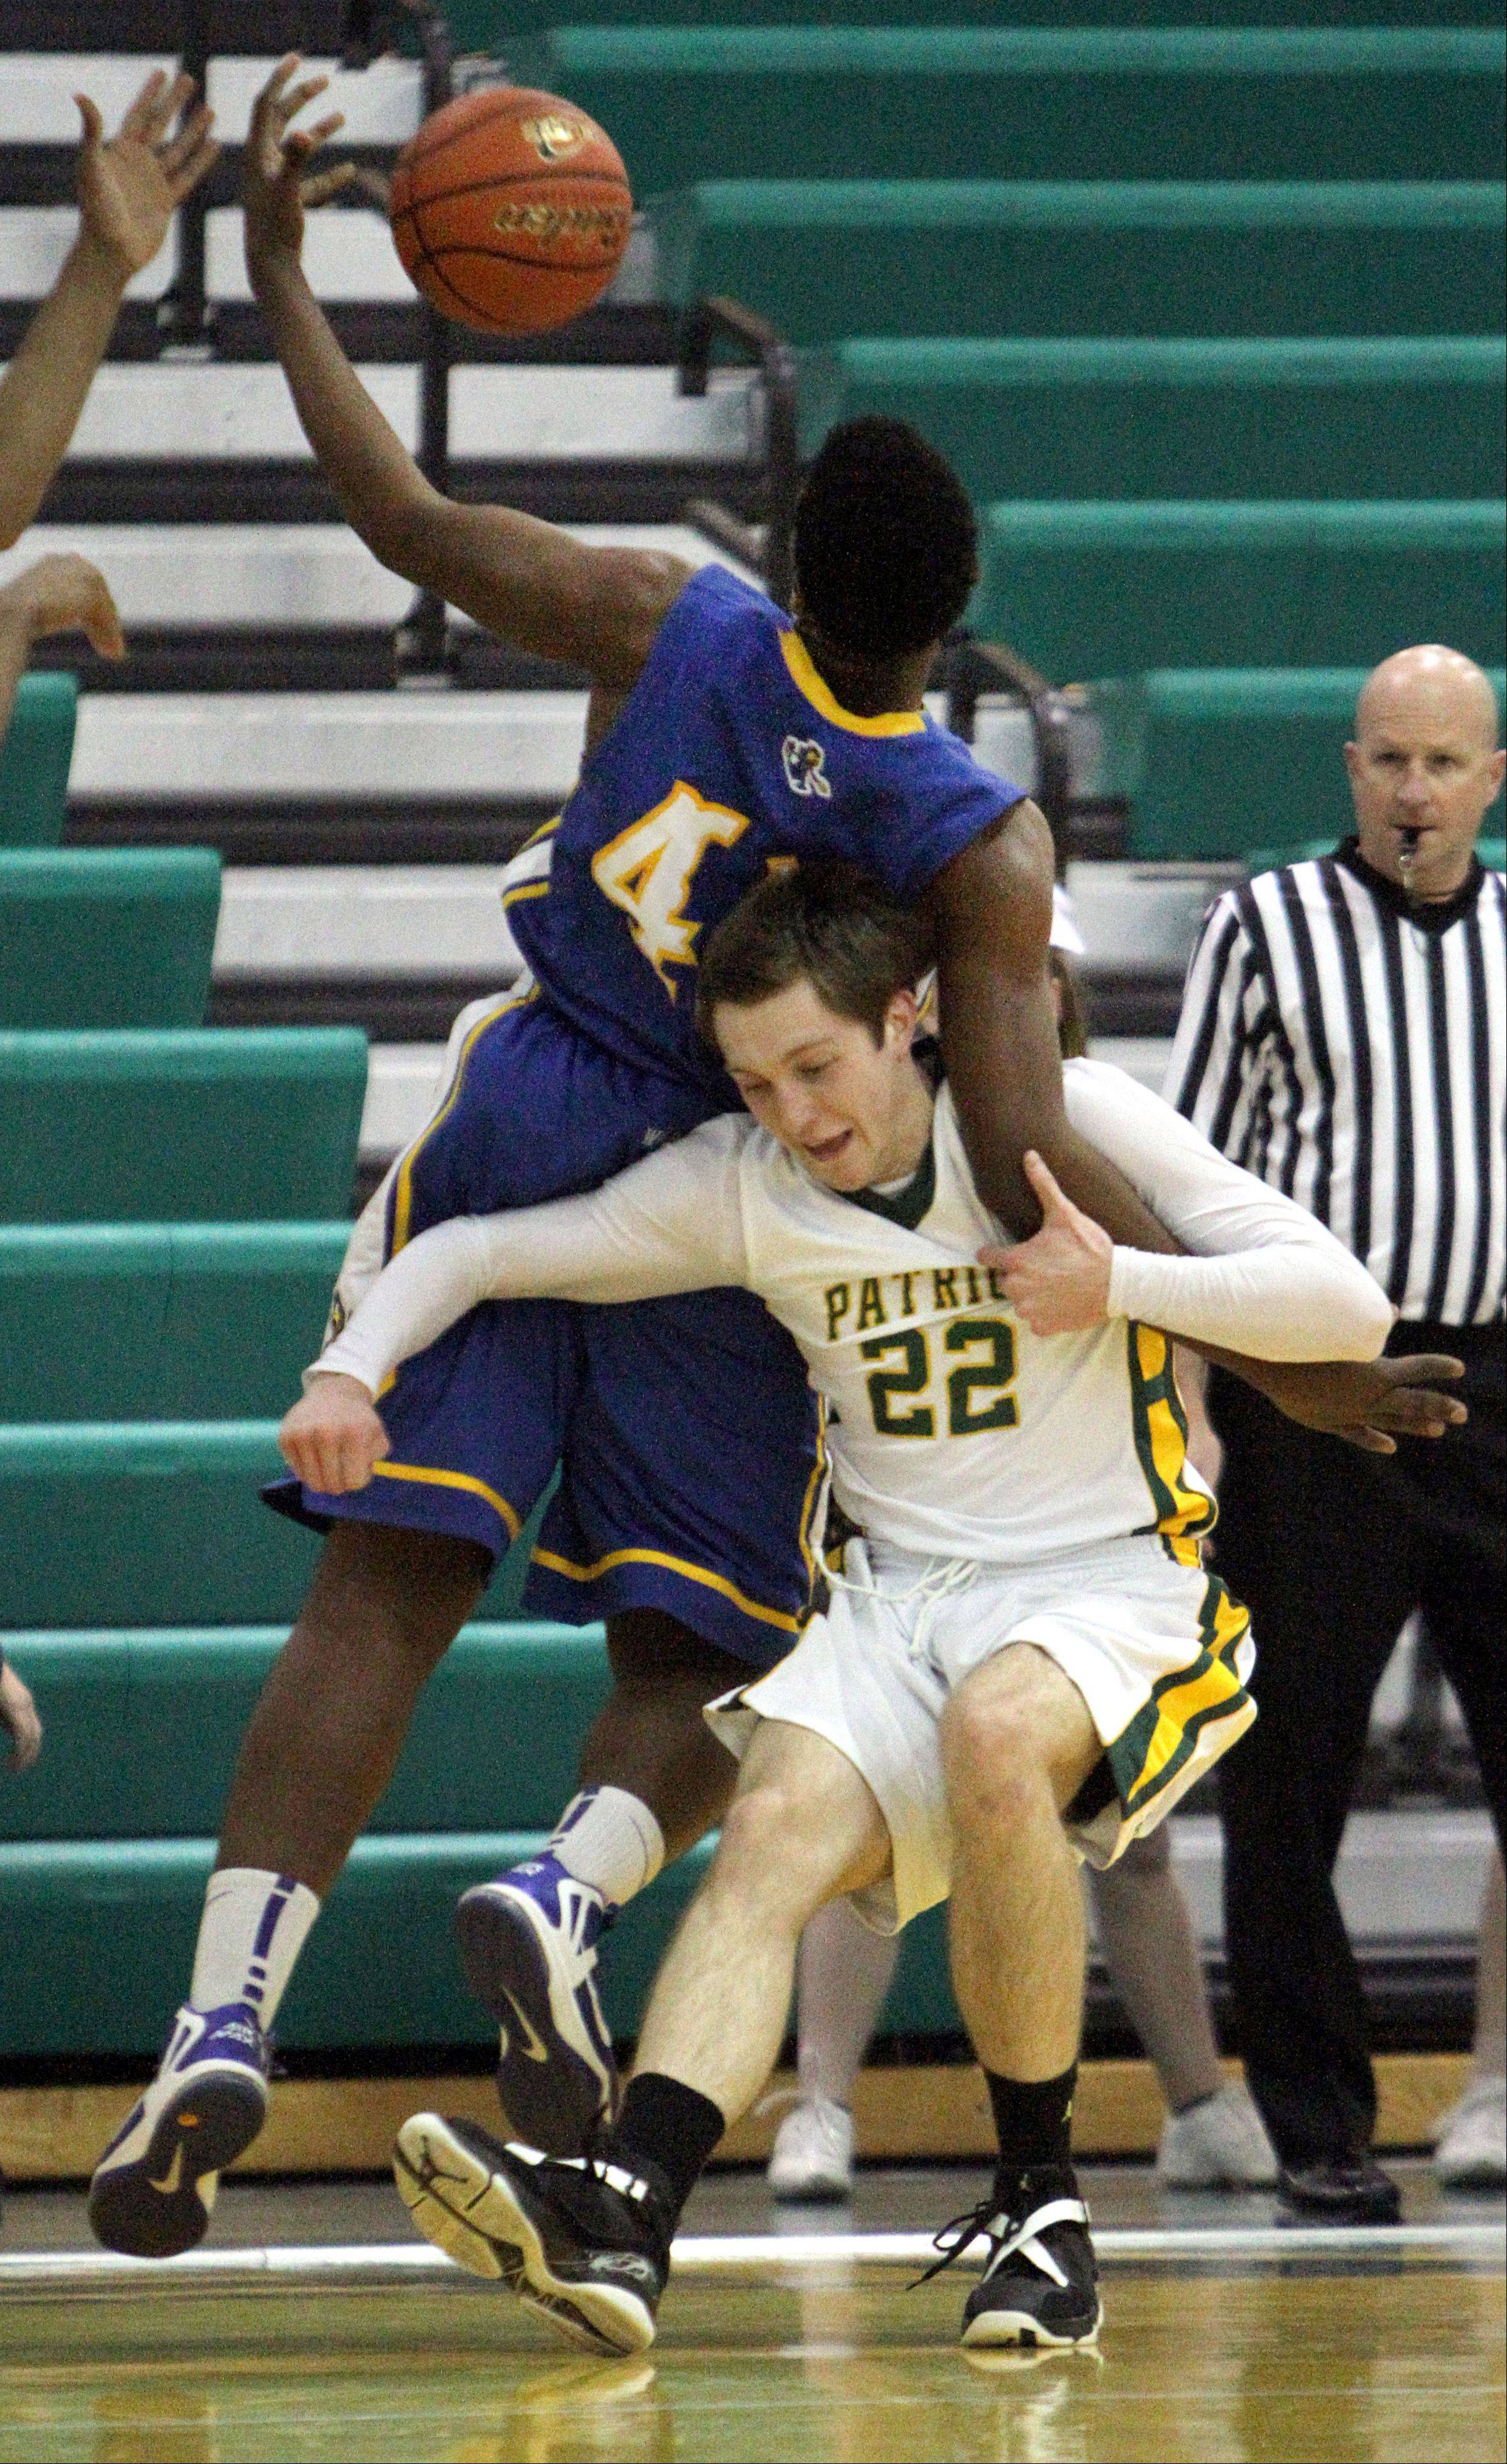 Warren's Dre Von Hill, left, and Stevenson's John Duffy battle for a rebound Tuesday night at Stevenson.